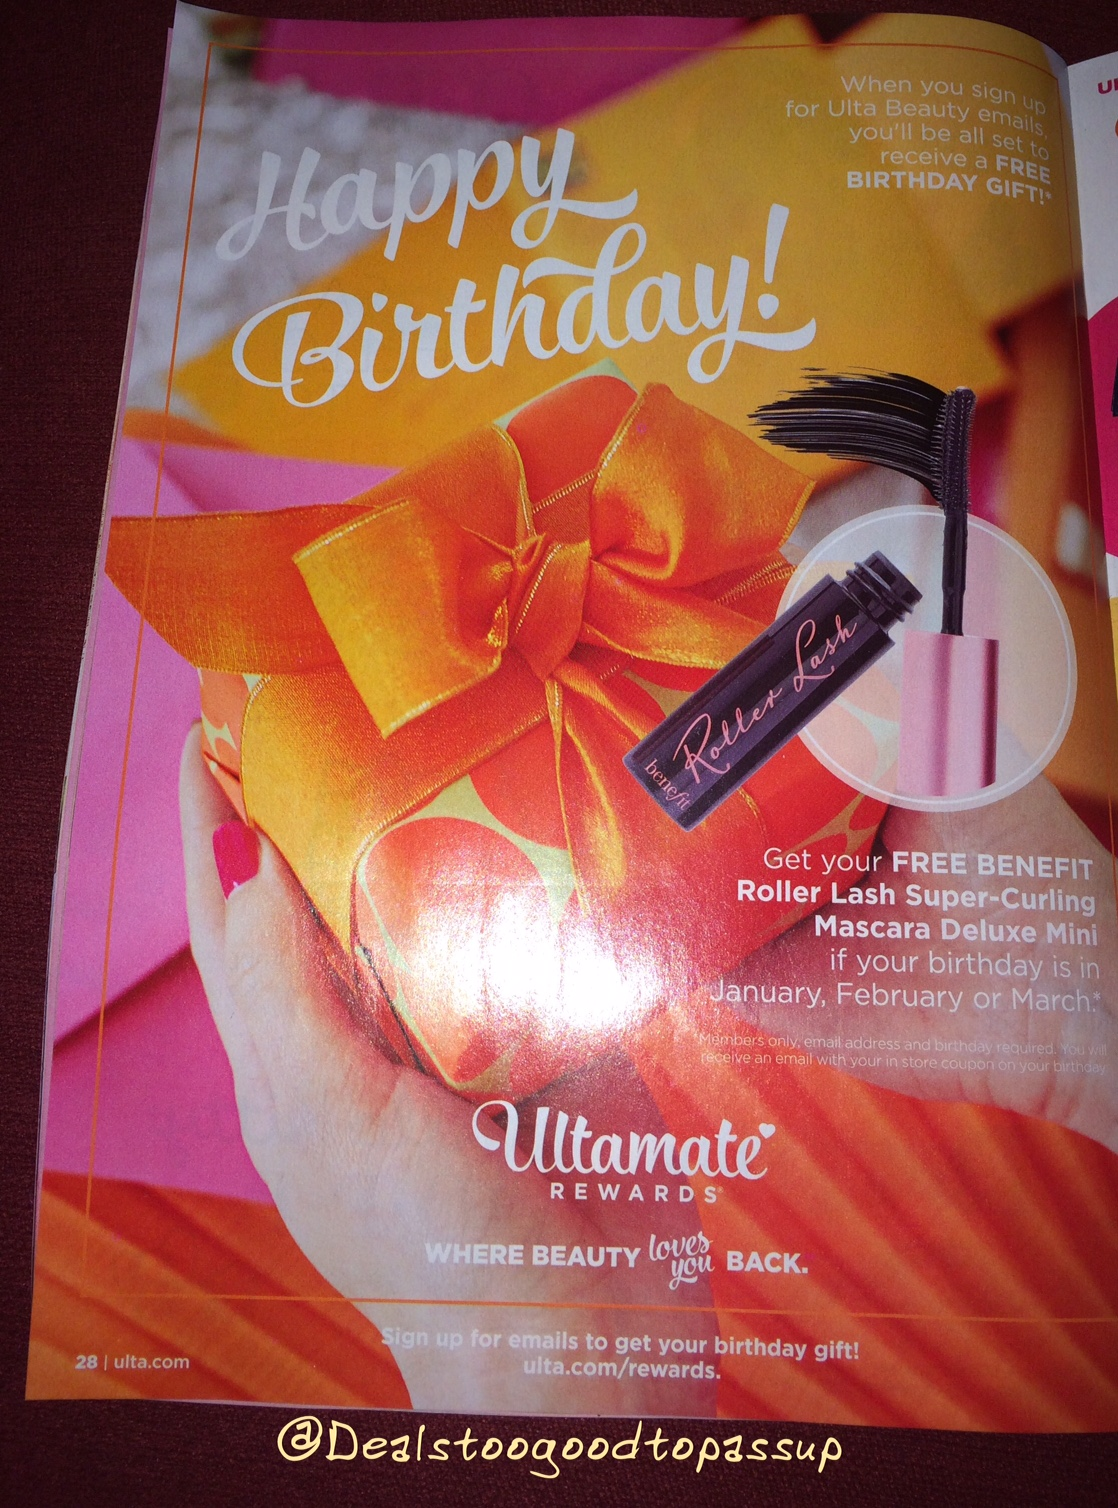 The Ulta 2016 Birthday Gift Changes Each Quarter | Deals Too Good ...